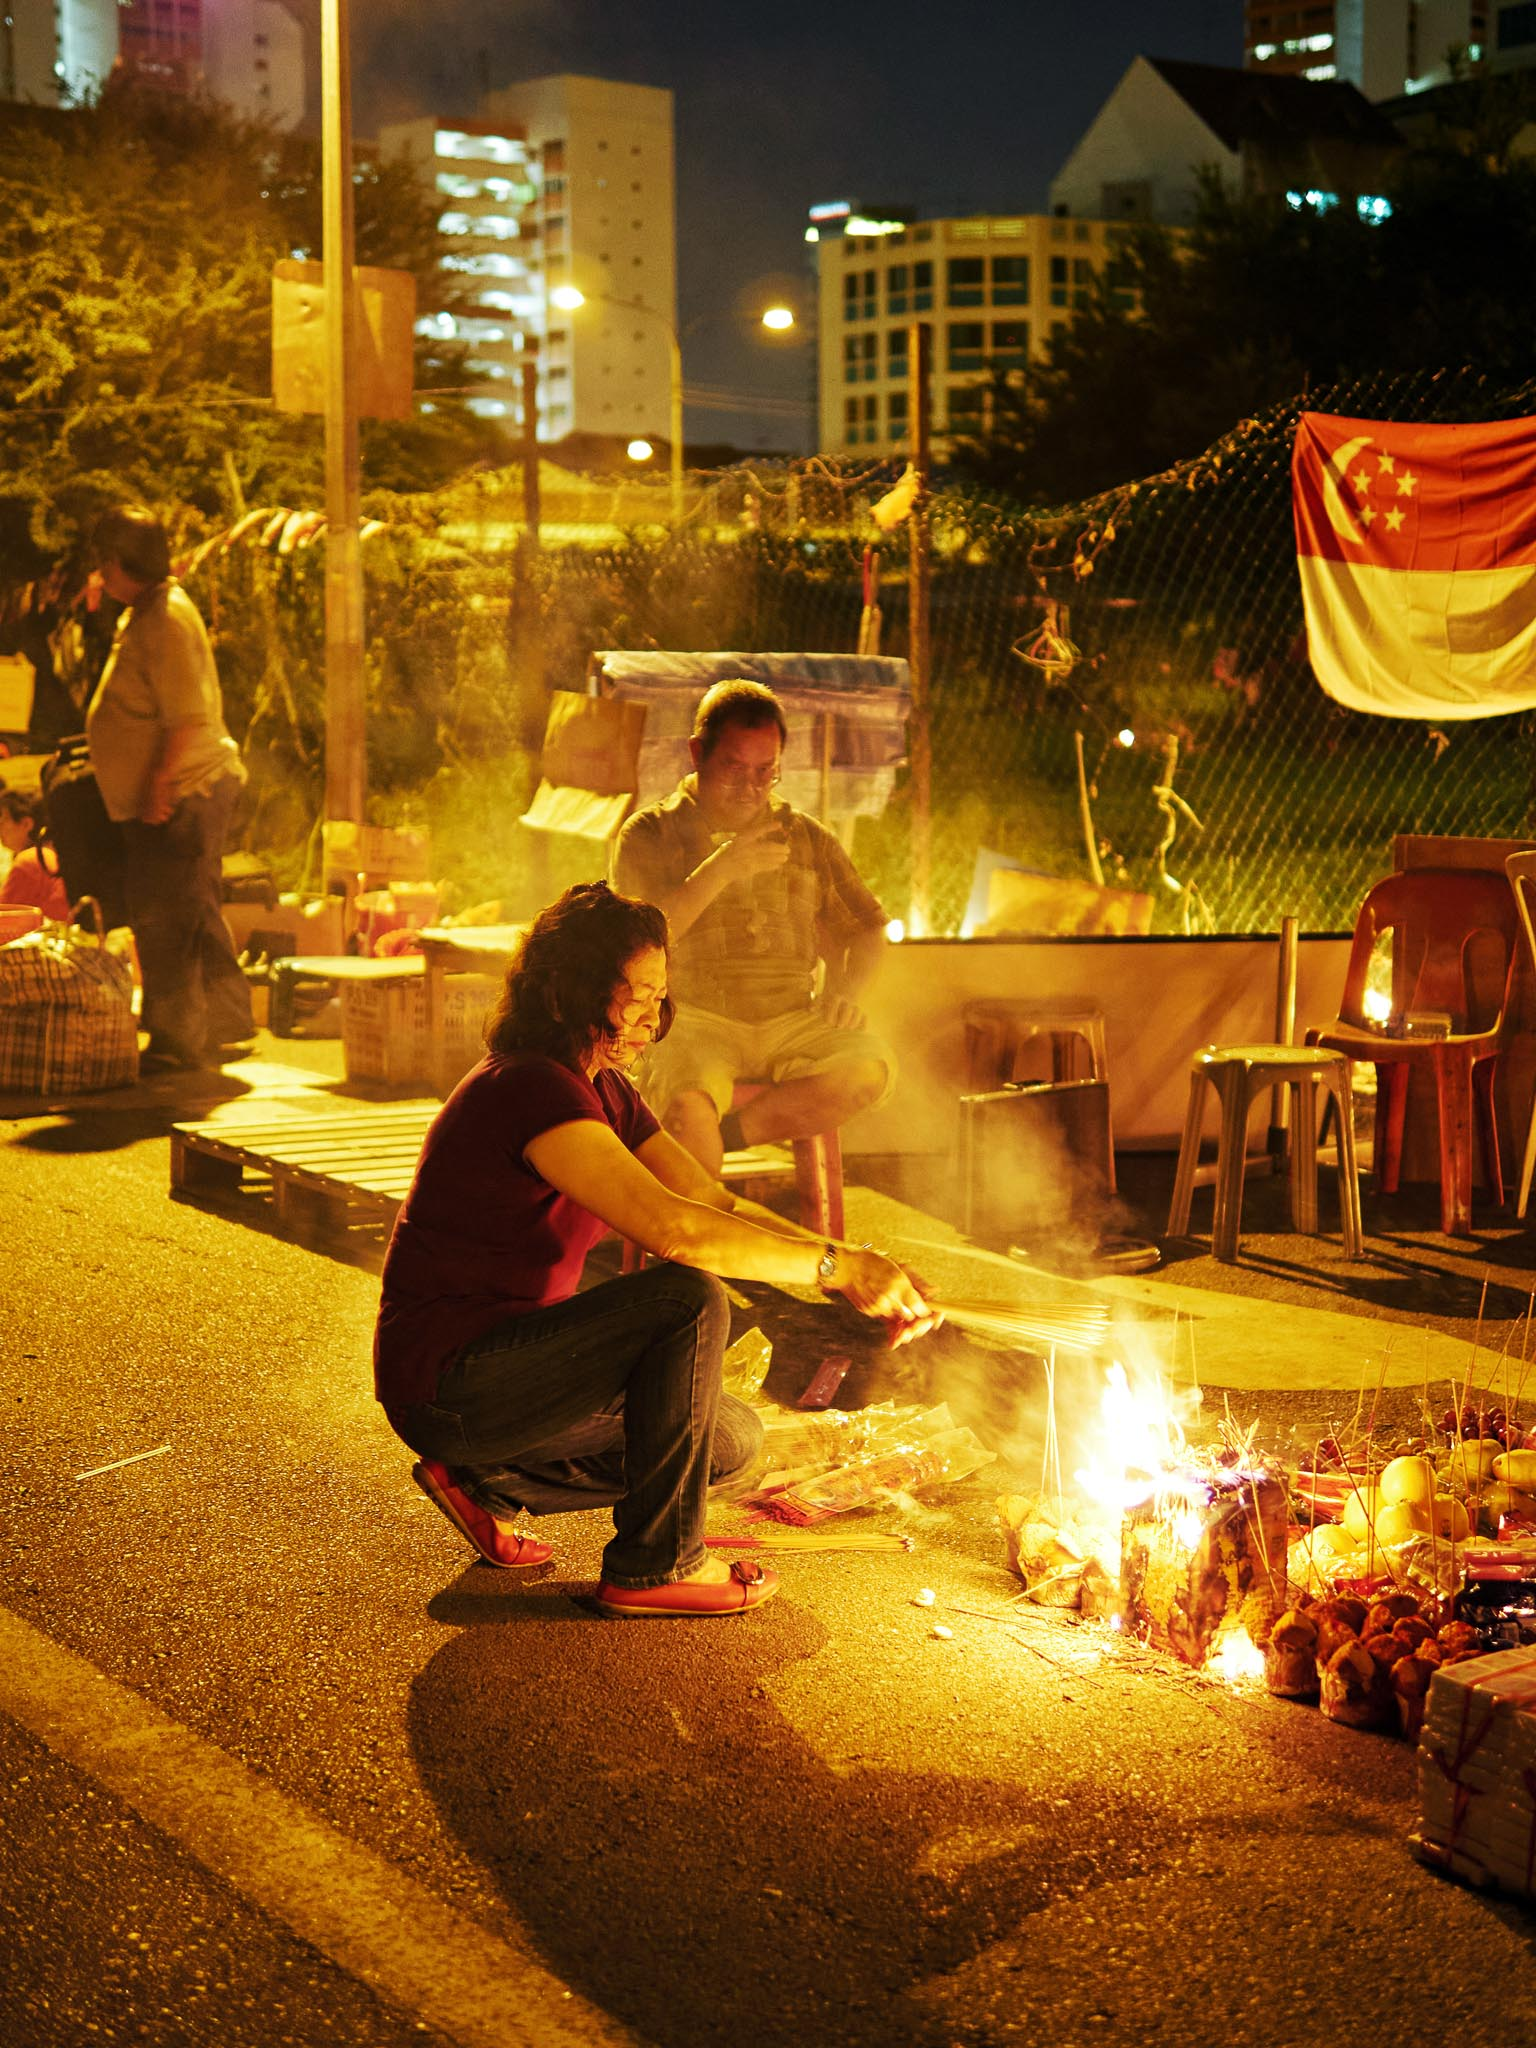 A woman burning incense sticks and joss papers to celebrate the Hungry Ghost (7th month) Festival, Jalan Besar, Singapore